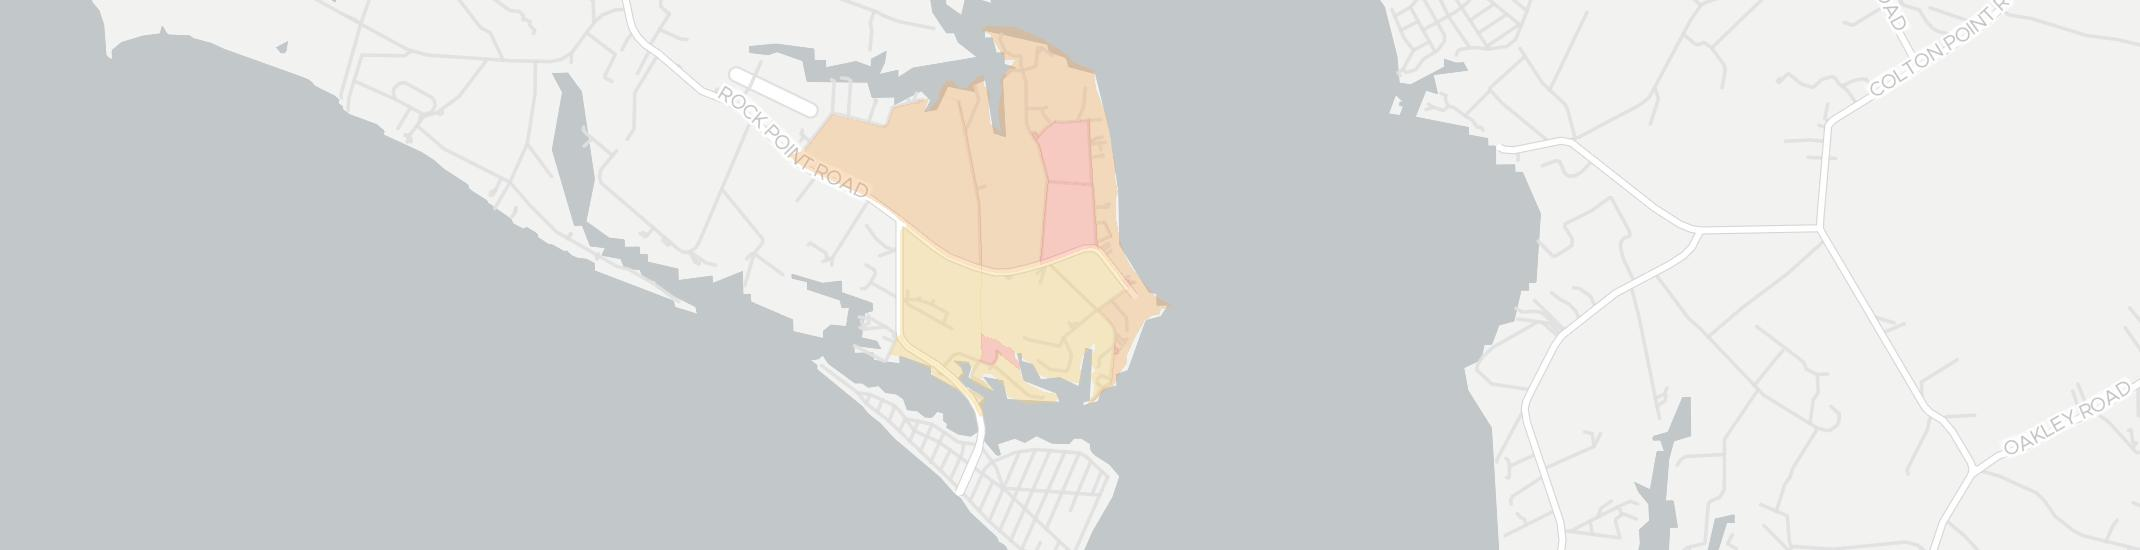 Rock Point Internet Competition Map. Click for interactive map.